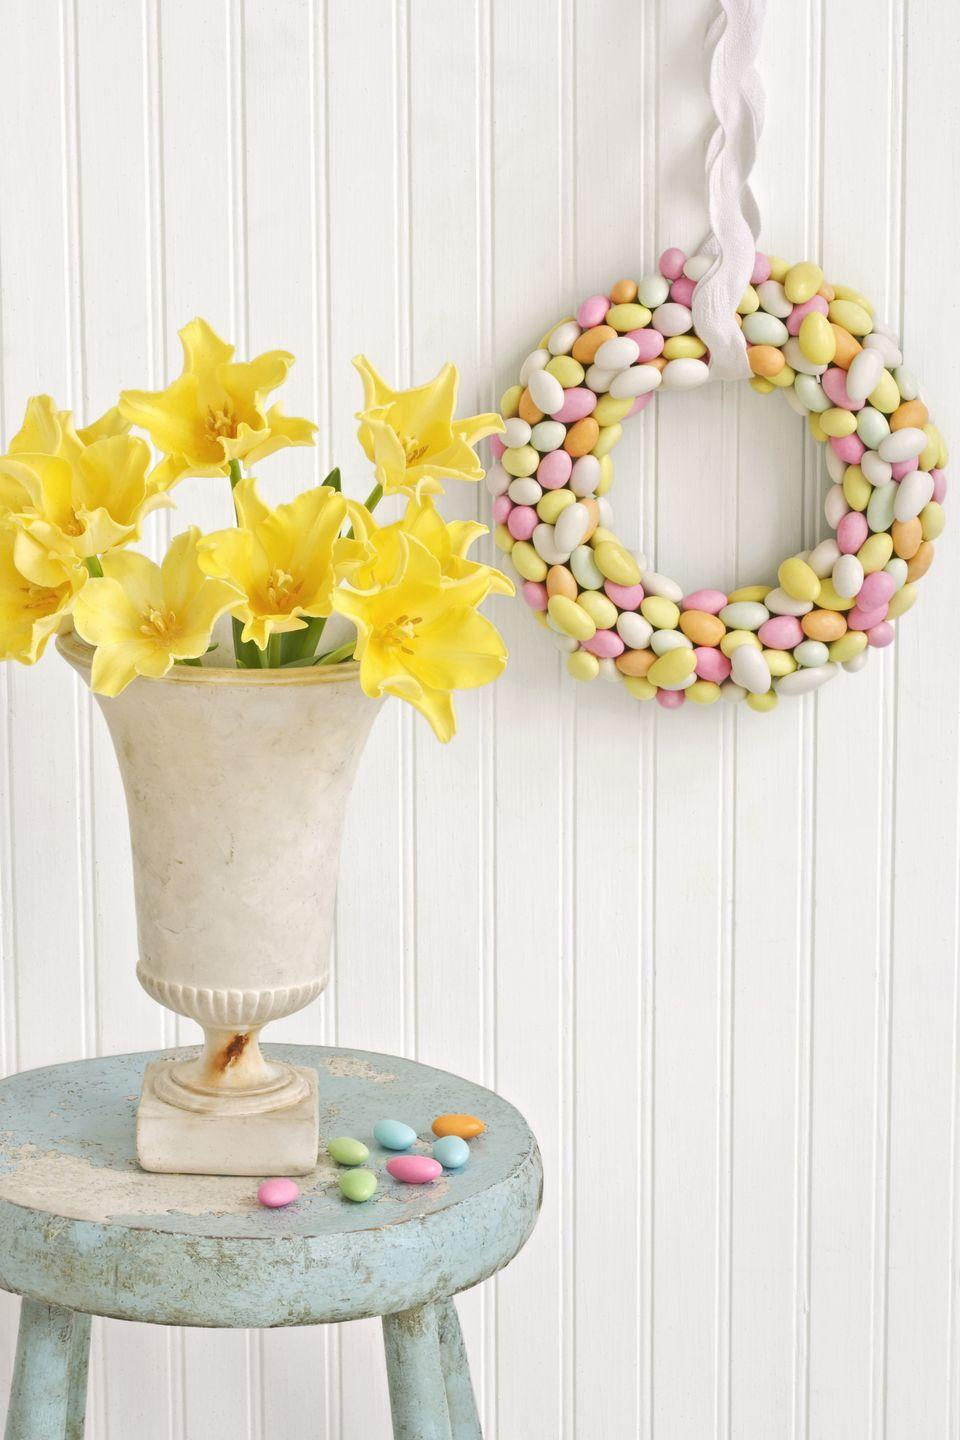 "<p>Egg-shaped Jordan almonds make an especially sweet spring decoration.</p><p><strong>To make:</strong> Take a 12-inch Styrofoam wreath form, and beginning with the inside circumference, hot-glue the almonds in place, overlapping a few of them to add dimension. Continue in a circular pattern until the entire front and inner and outer edges of the wreath are covered. Hang with a sturdy piece of cotton ribbon, or oversize rickrack trim as shown.To store the wreath, wrap it in paper, place flat in a box, and keep in a cool, dry spot. It should last for one to two years.</p><p><a class=""link rapid-noclick-resp"" href=""https://www.amazon.com/Craft-Foam-Wreath-Polystyrene-Decorations/dp/B07FNK6YMB/ref=sr_1_2_sspa?tag=syn-yahoo-20&ascsubtag=%5Bartid%7C10050.g.1652%5Bsrc%7Cyahoo-us"" rel=""nofollow noopener"" target=""_blank"" data-ylk=""slk:SHOP WREATH FORMS"">SHOP WREATH FORMS</a></p>"